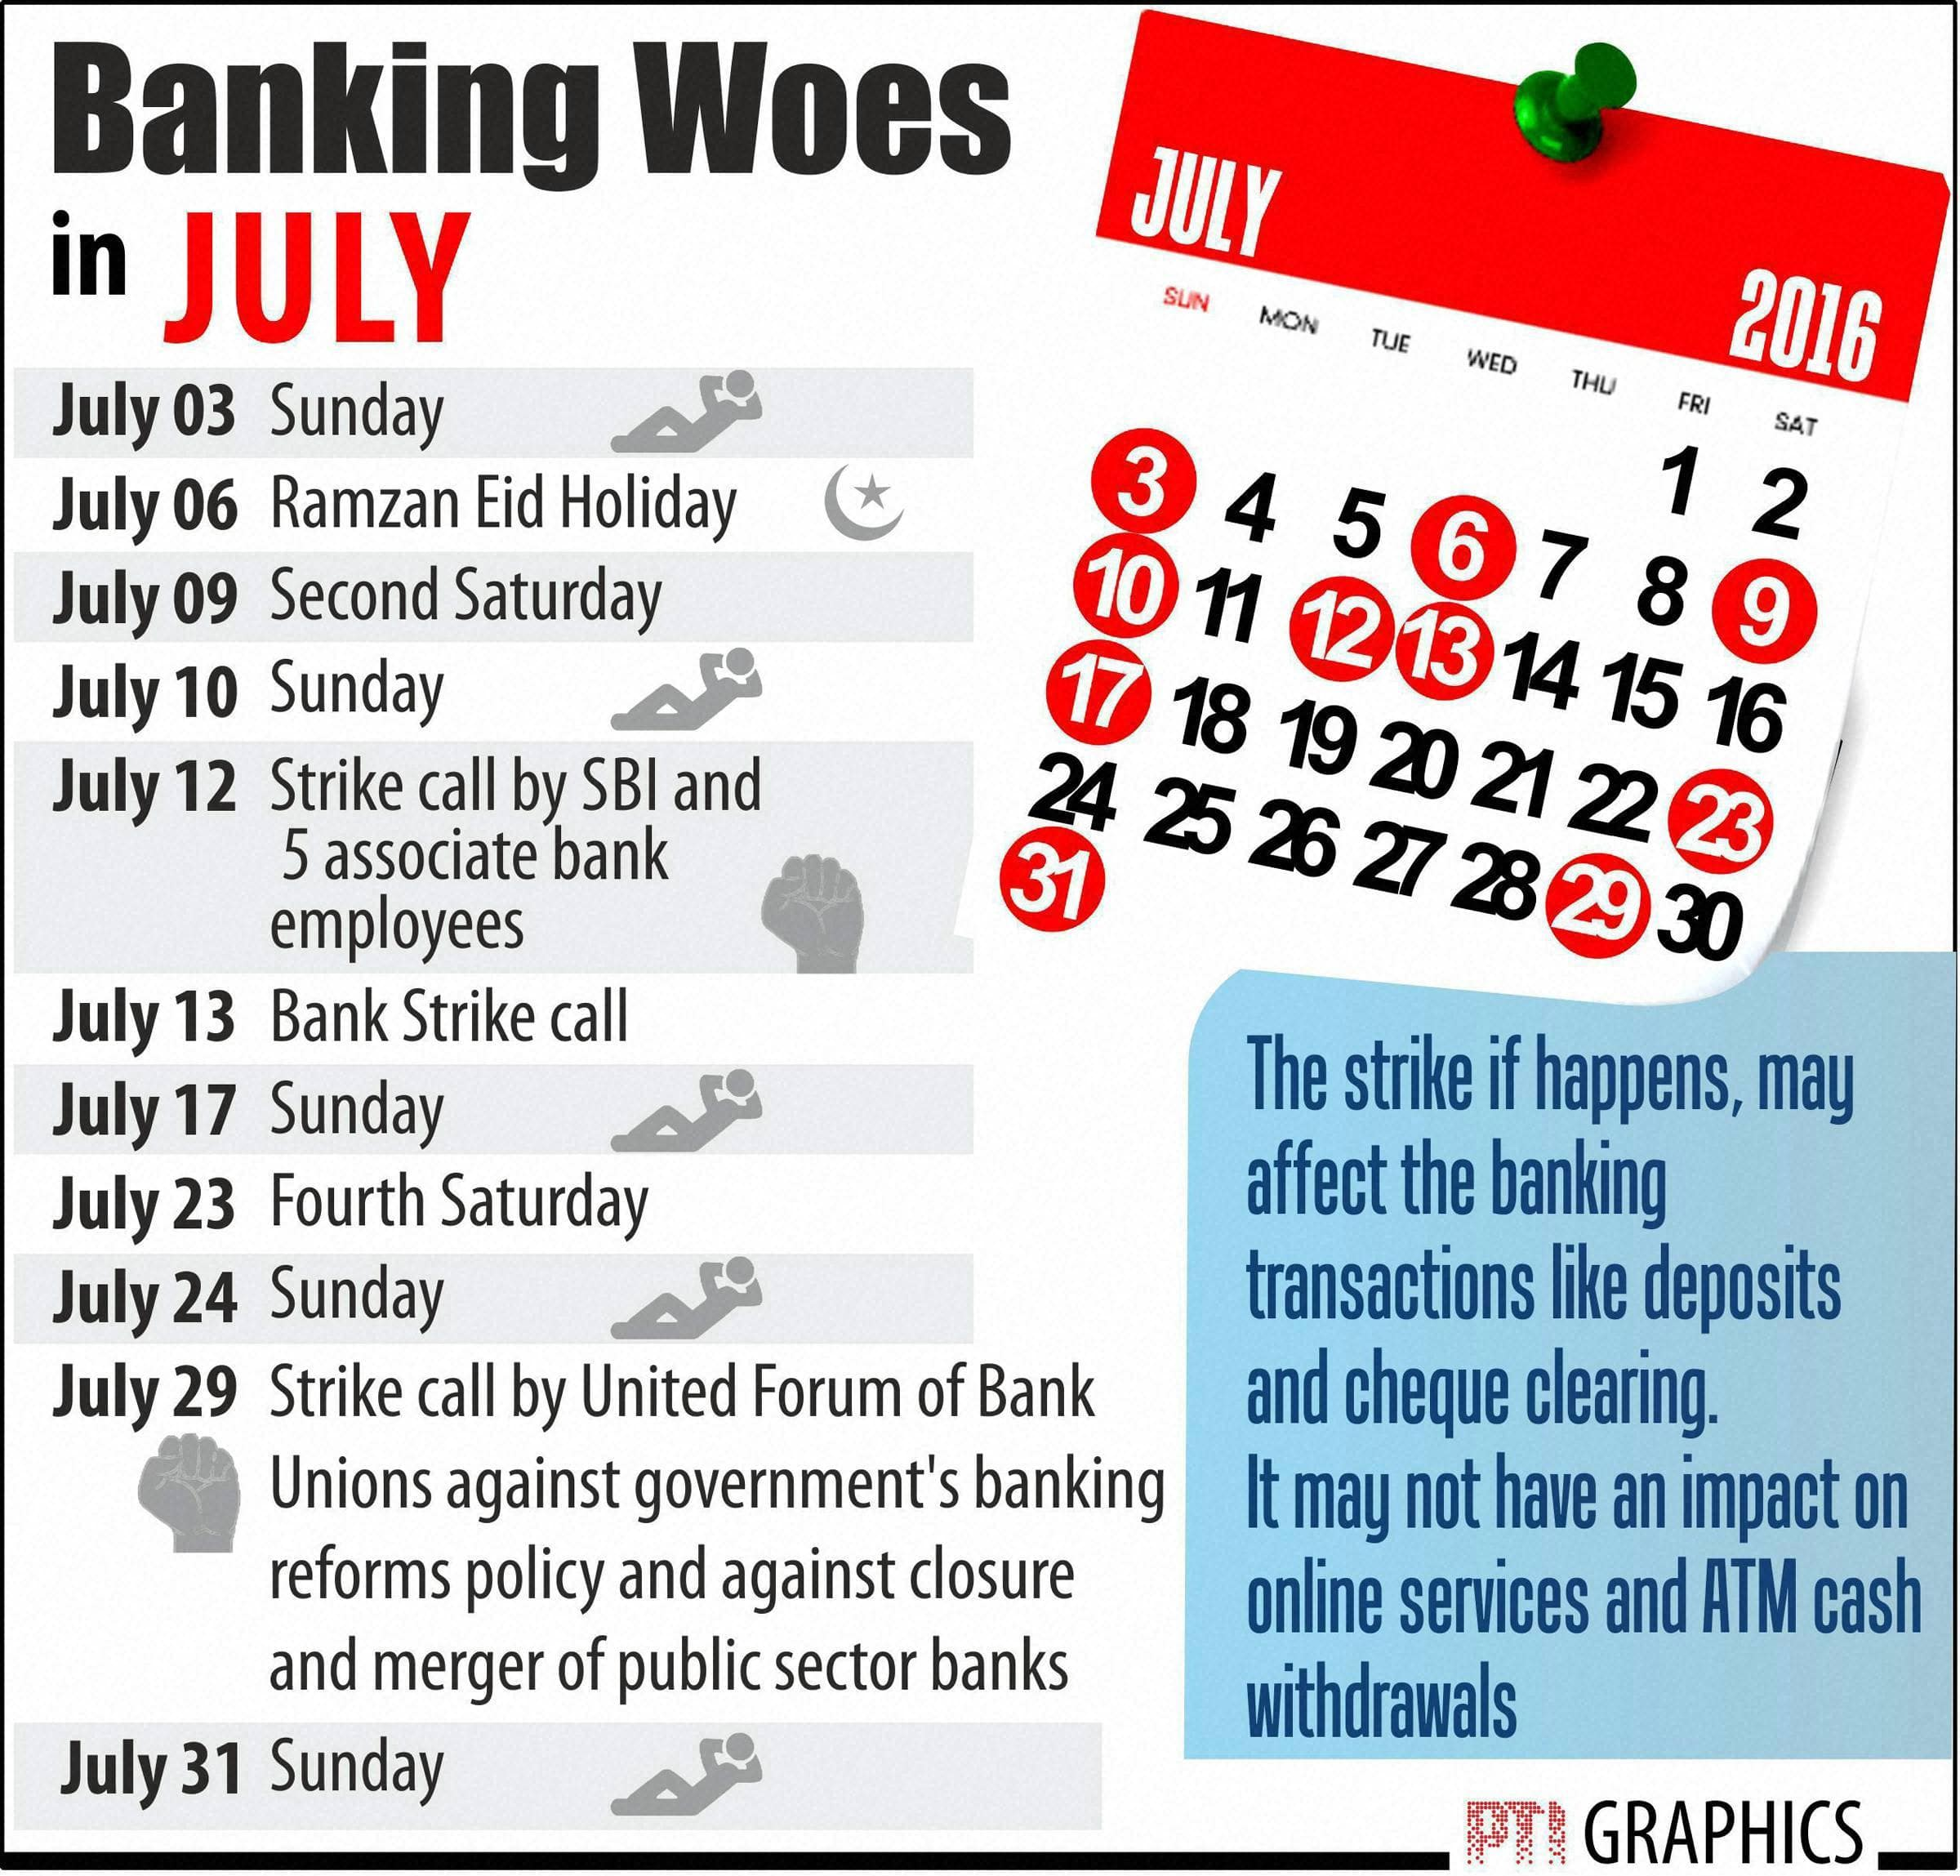 National banks to be non-operational for 11 days in July